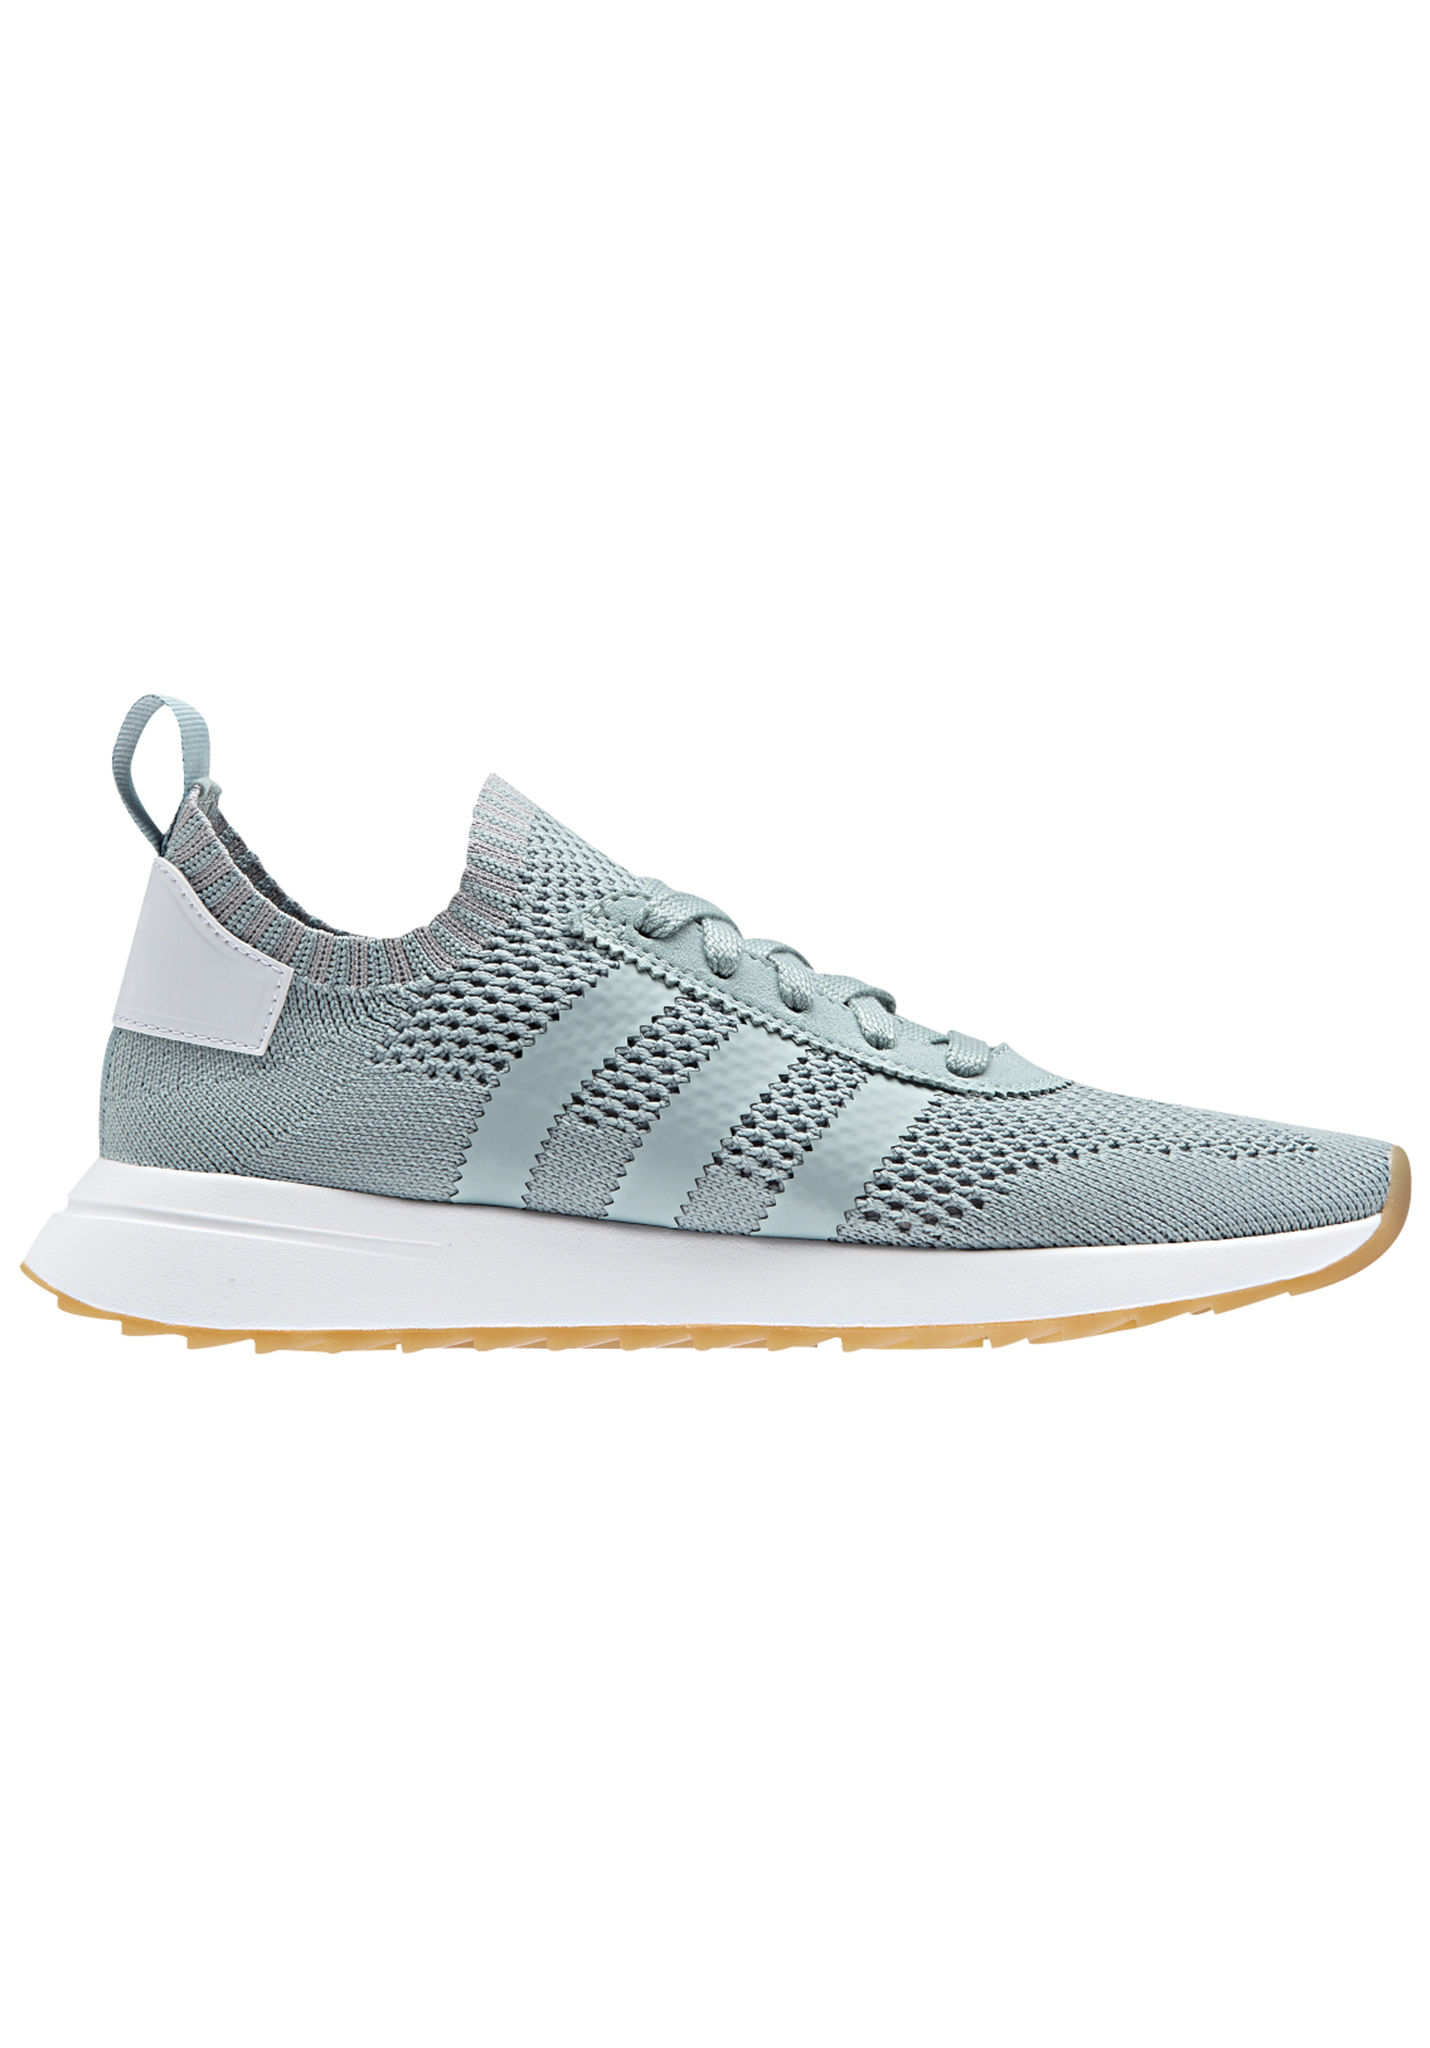 770e2485952 ADIDAS ORIGINALS Flashback Primeknit - Sneakers voor Dames - Groen - Planet  Sports